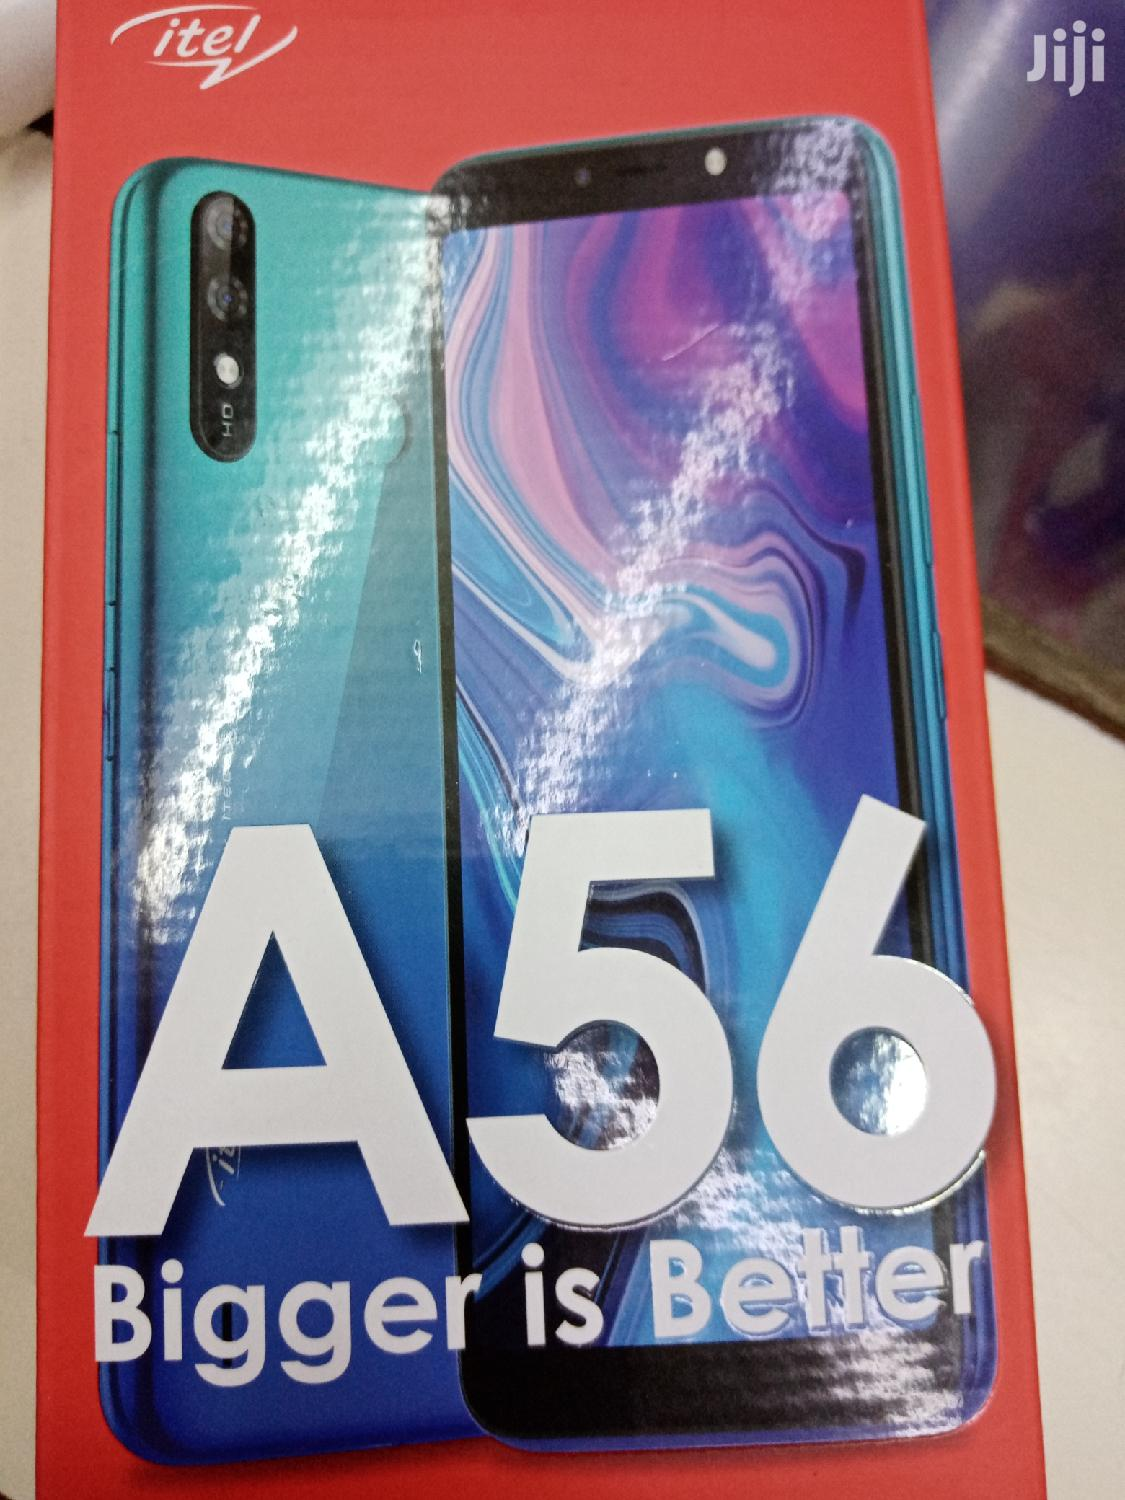 New Itel A56 16 GB | Mobile Phones for sale in Nairobi Central, Nairobi, Kenya